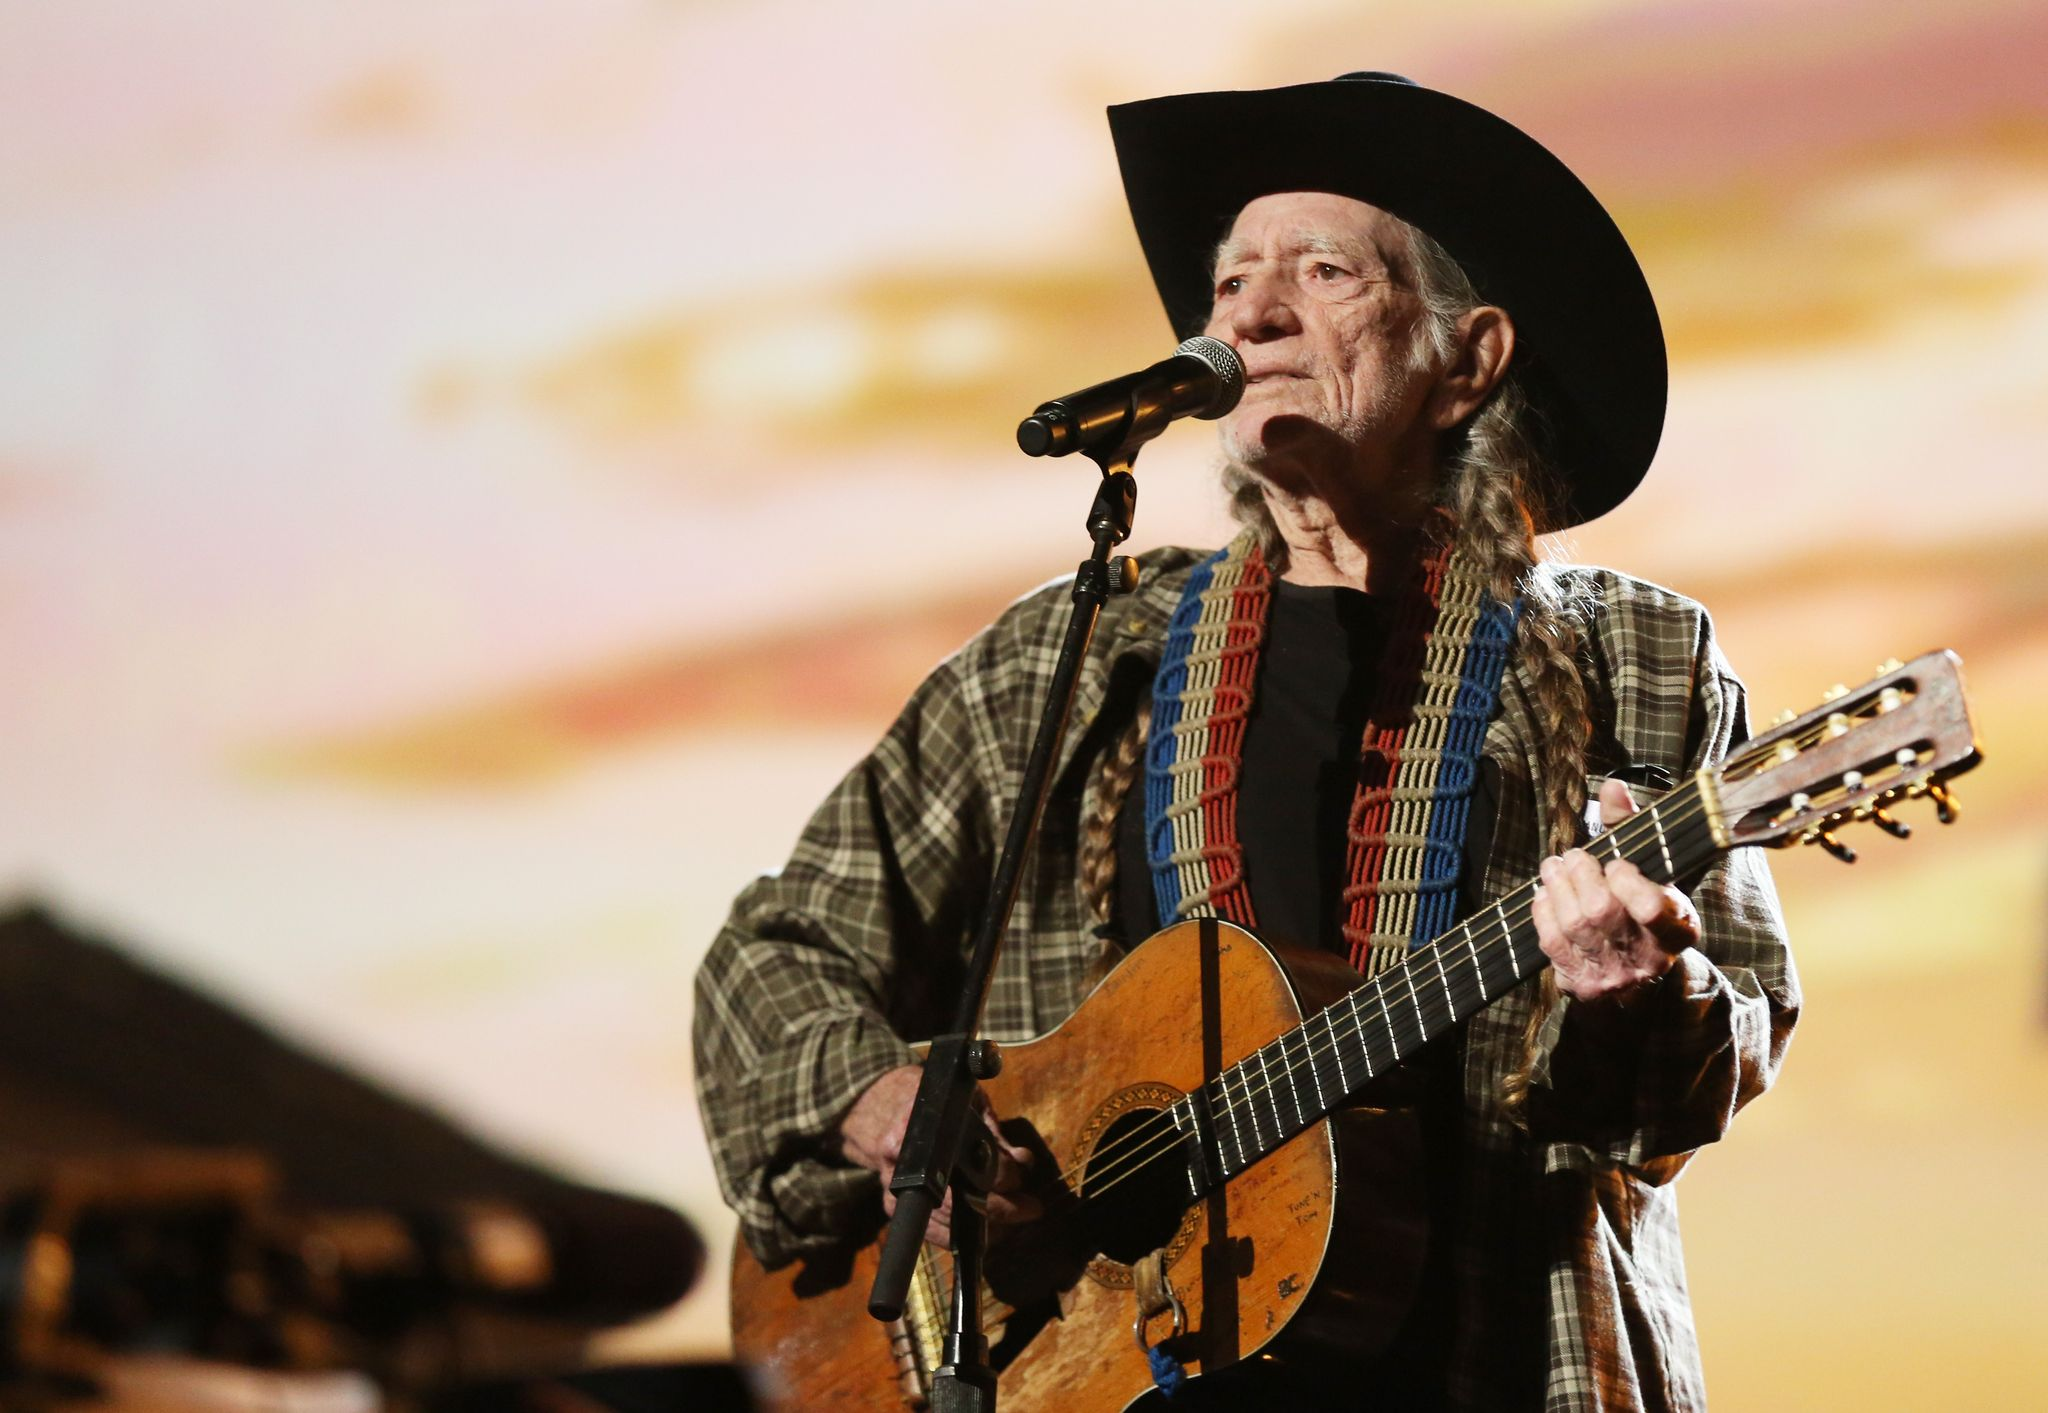 Willie Nelson support for Beto O'Rourke sparks conservative backlash